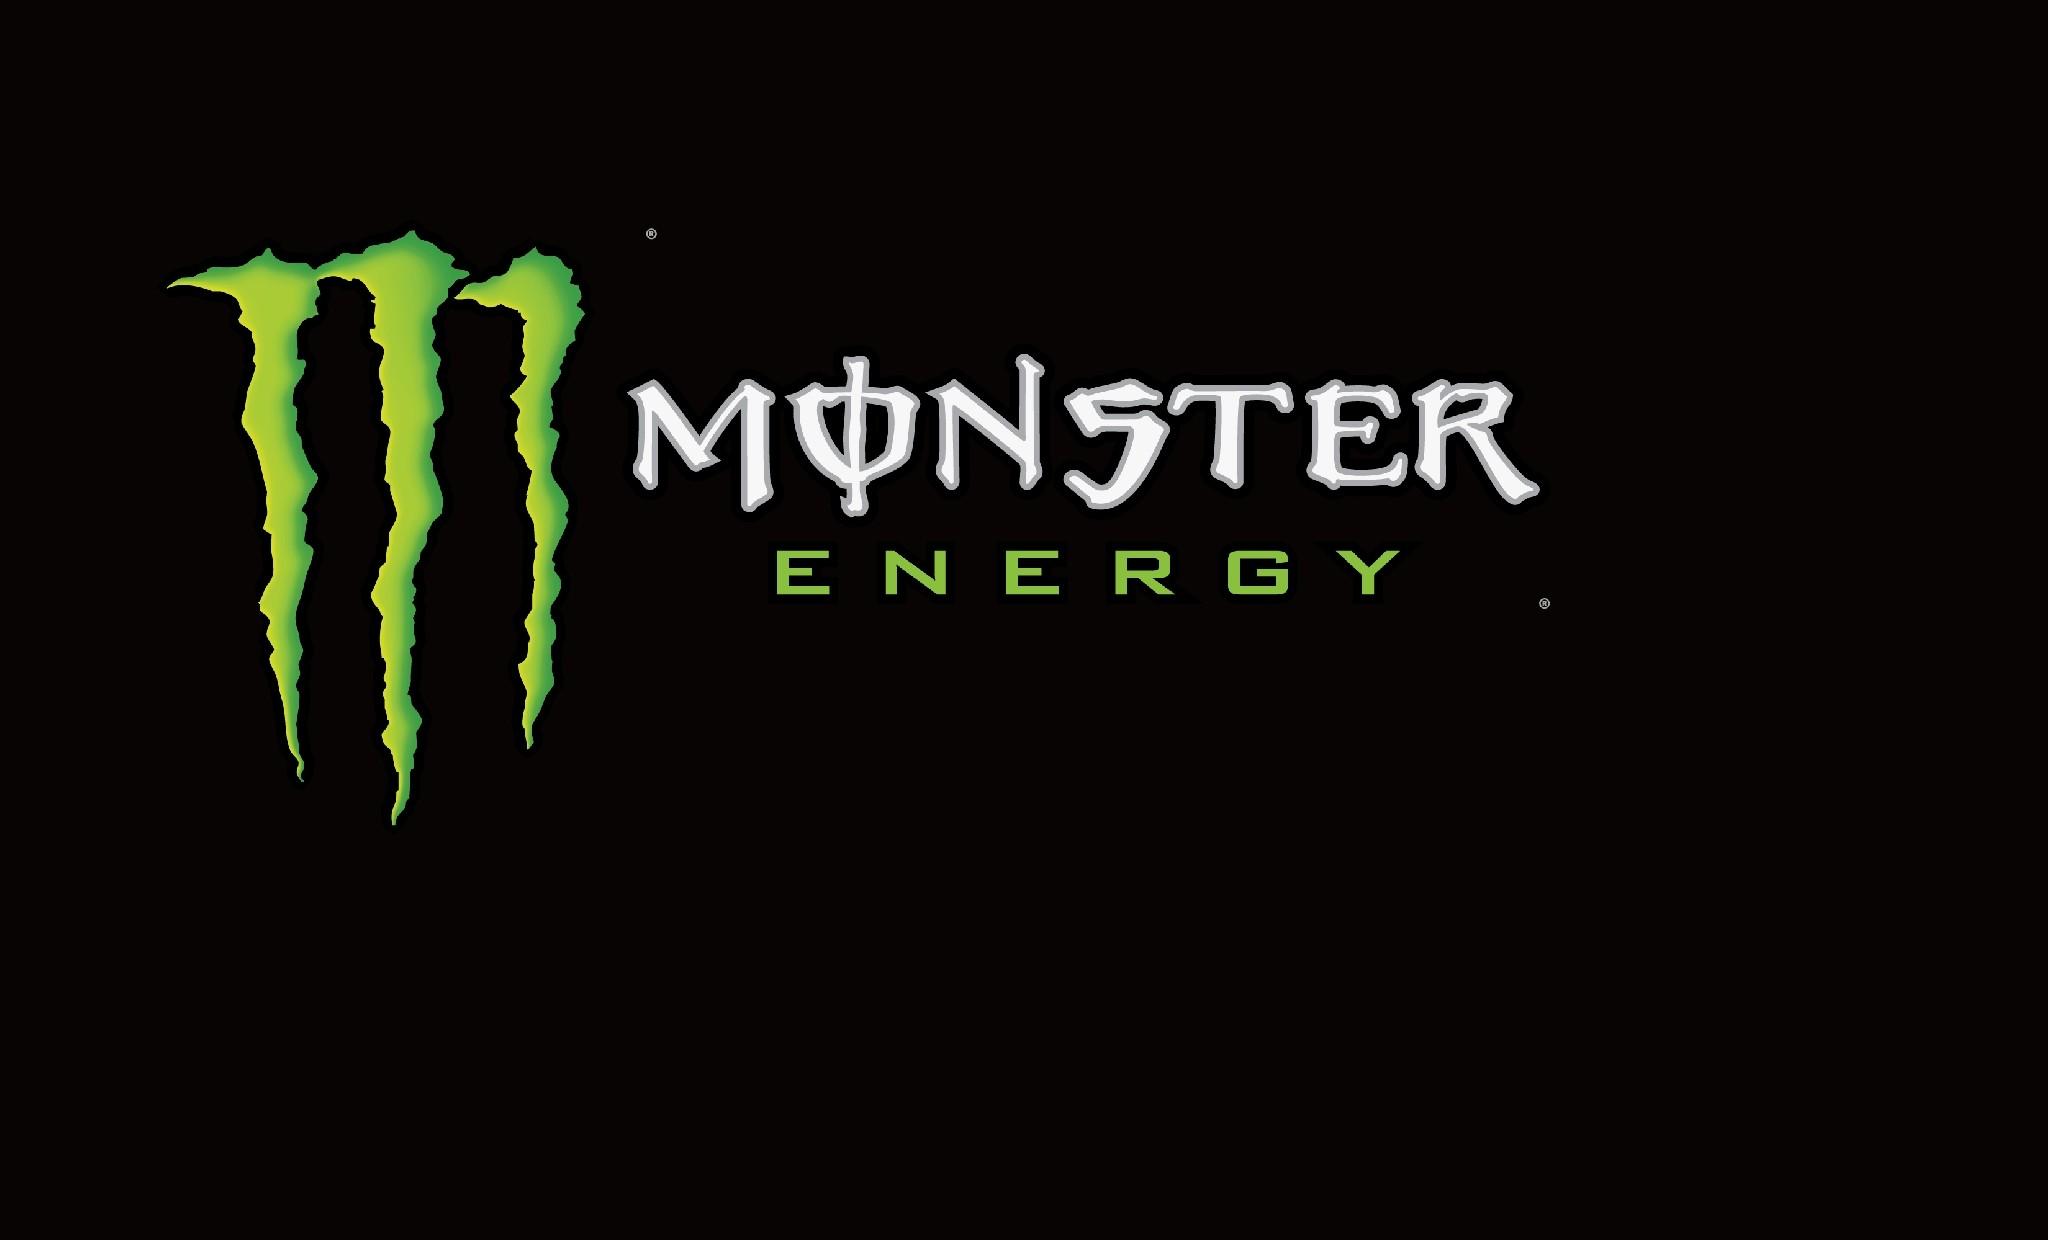 monster energy wallpaper for computer 183��